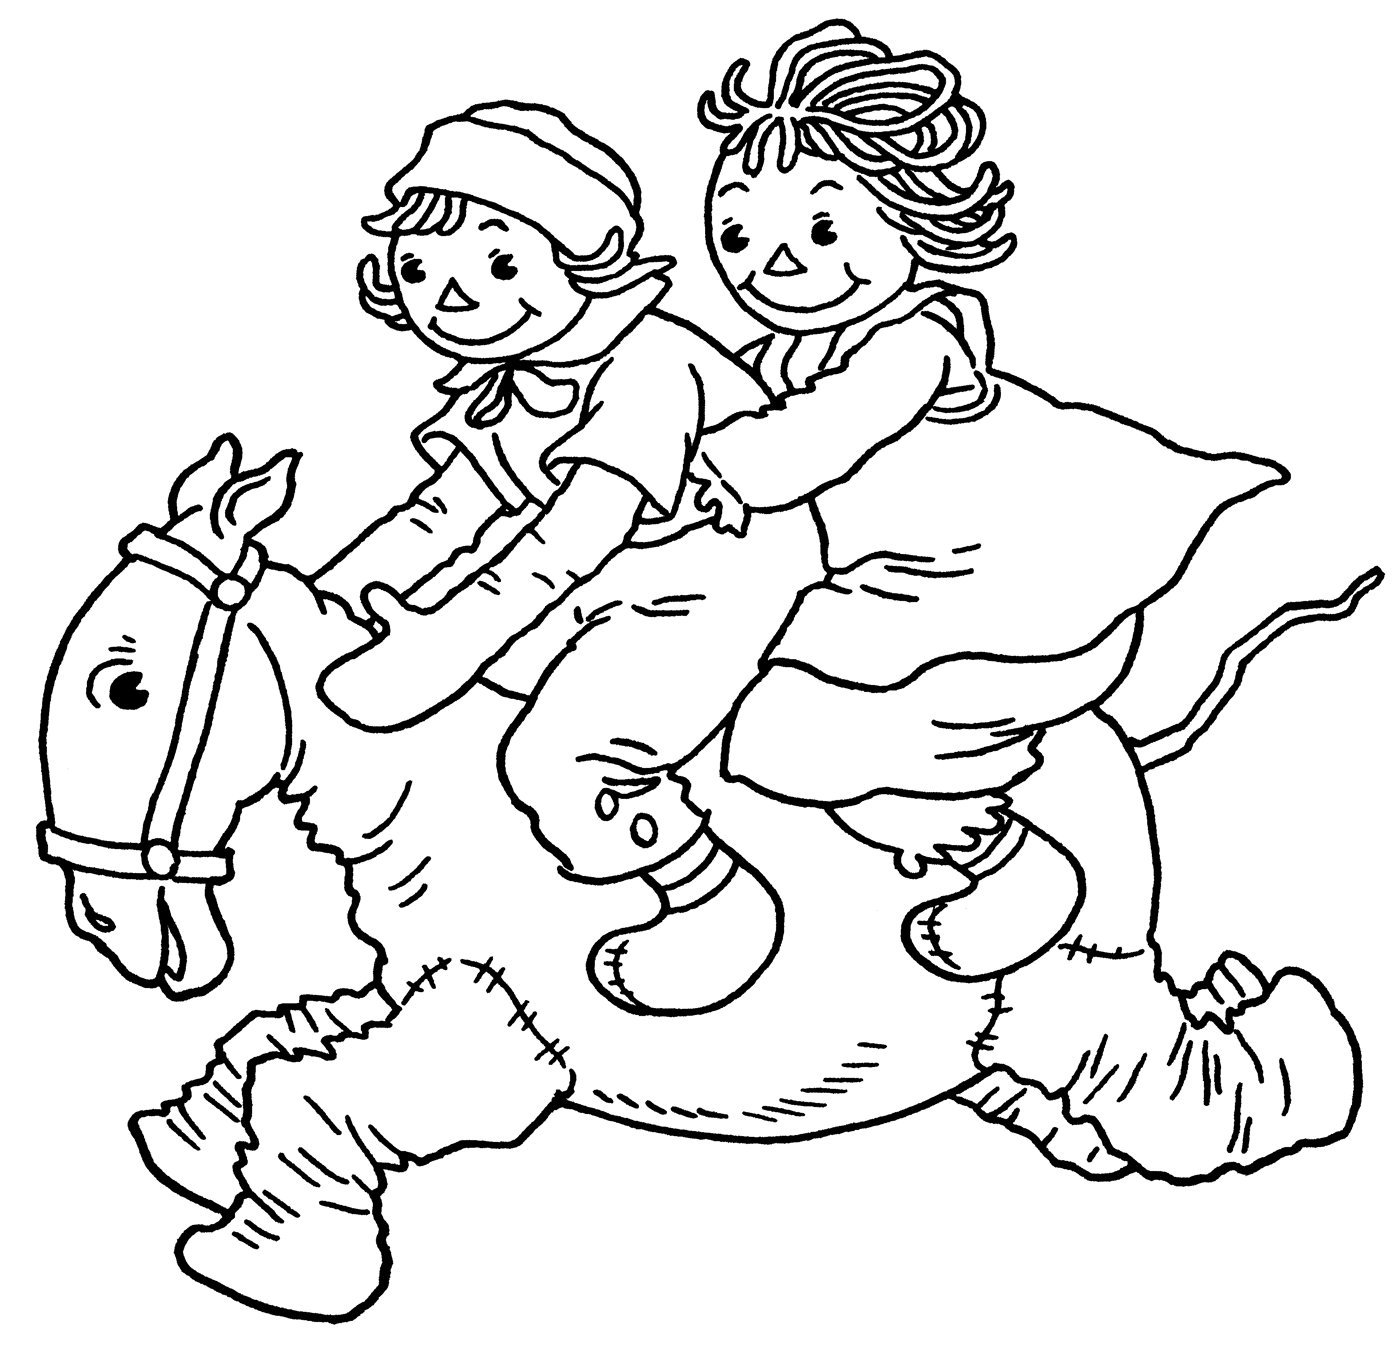 raggedy ann coloring pages - photo#10